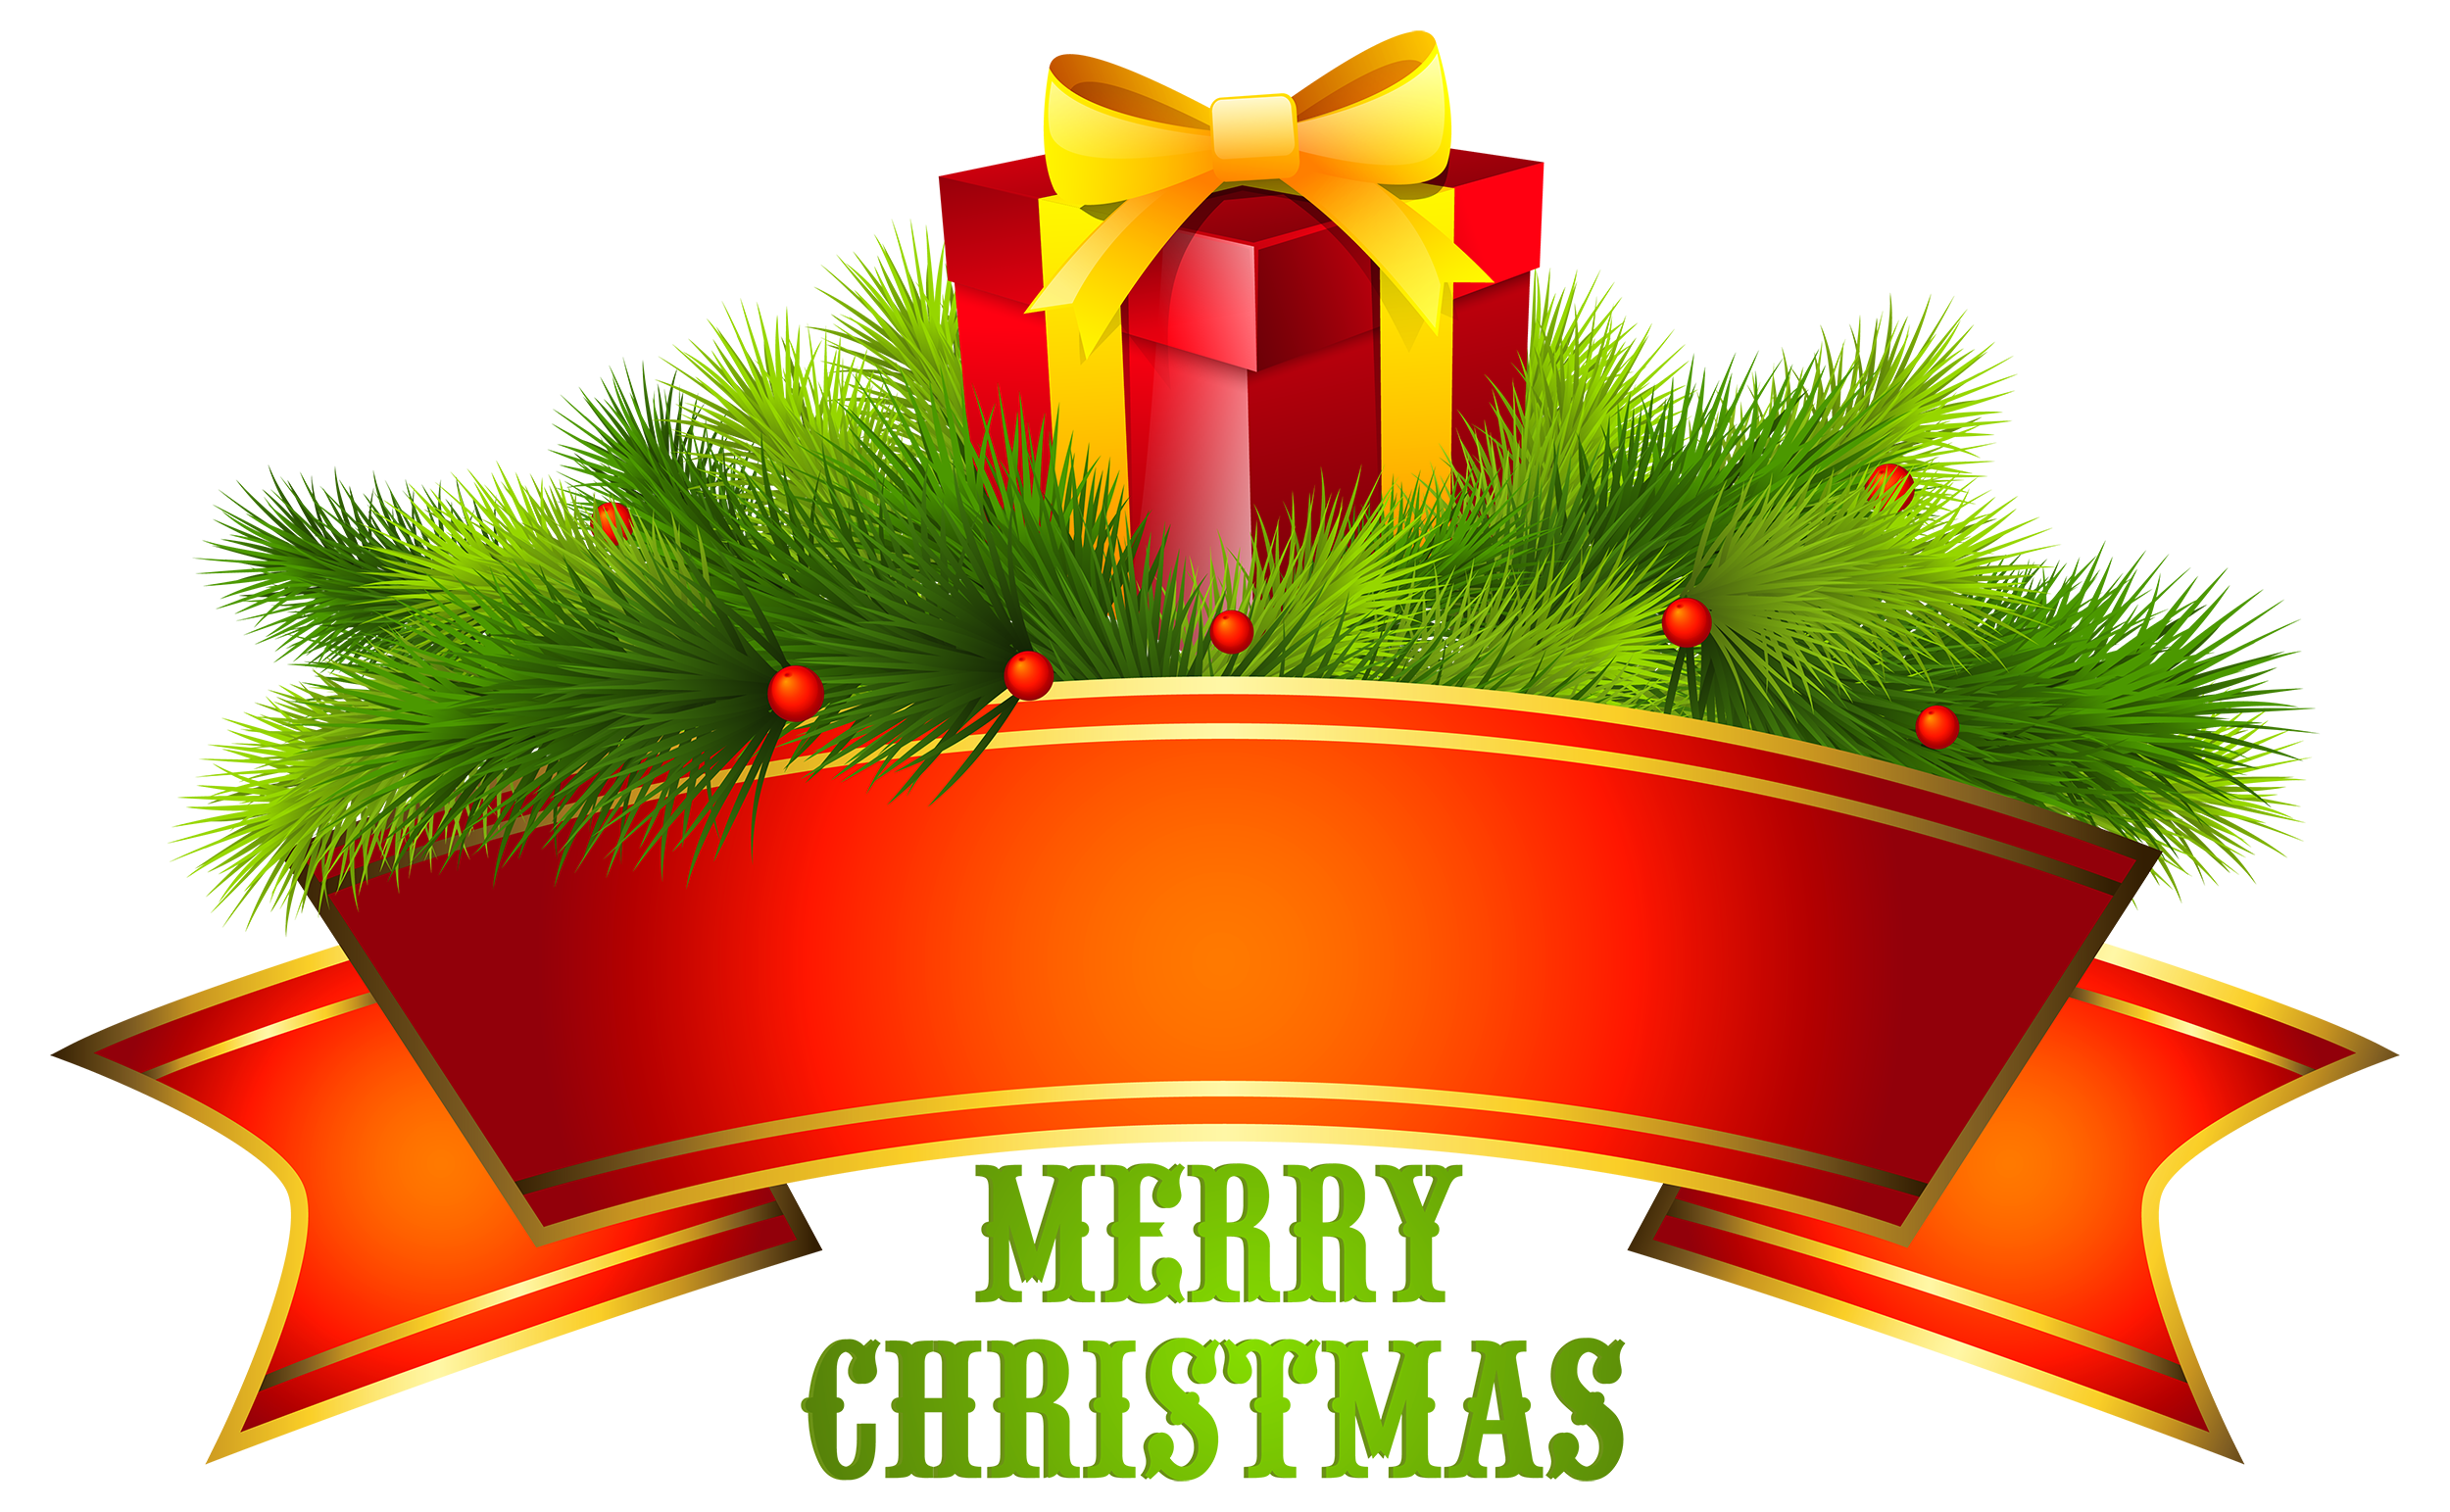 Merry text decor png. Scroll clipart christmas